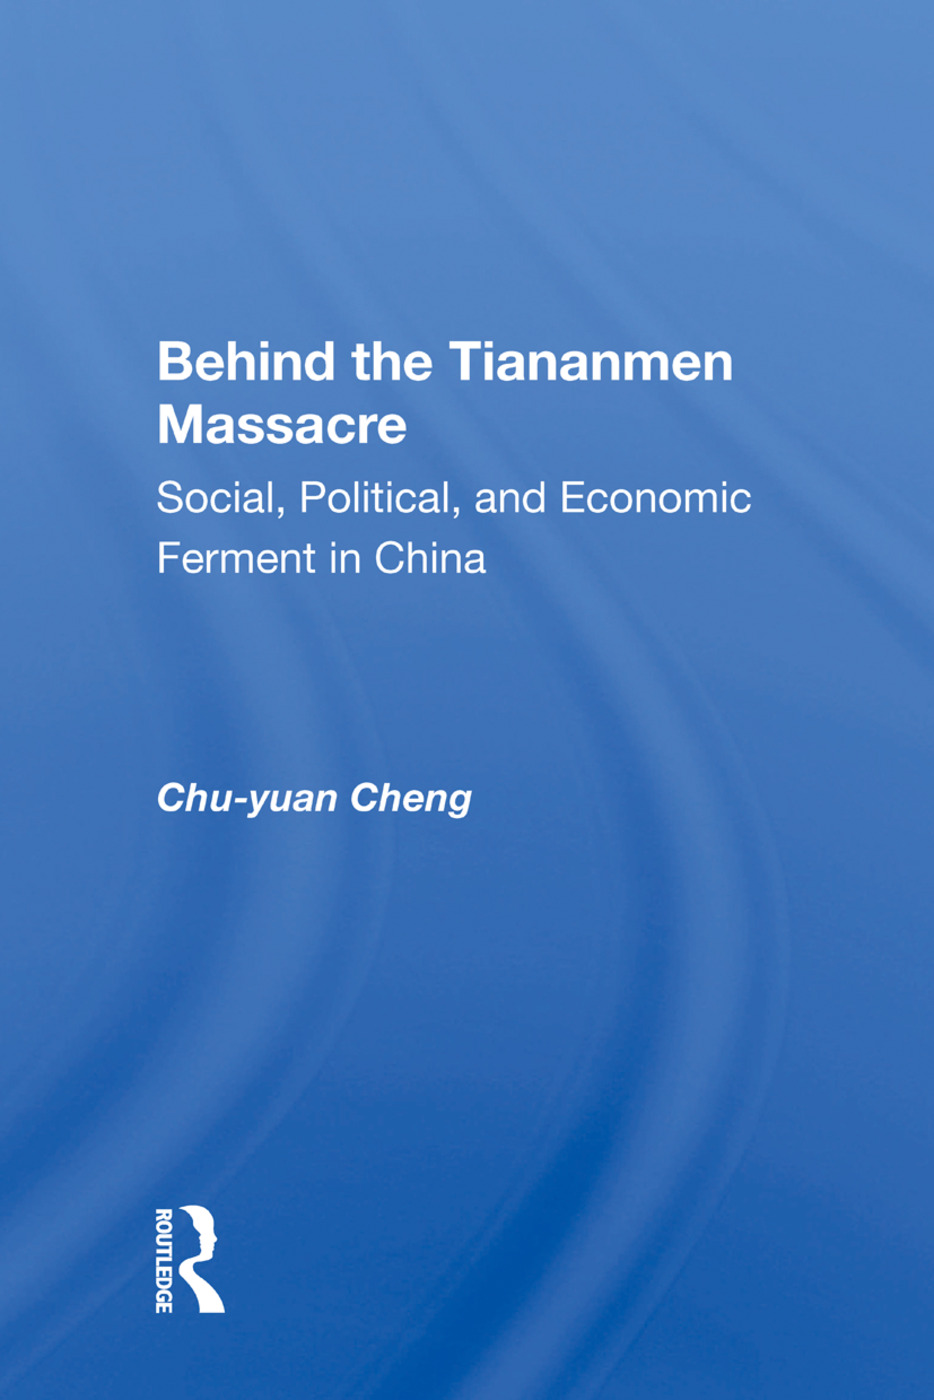 Behind the Tiananmen Massacre: Social, Political, and Economic Ferment in China book cover